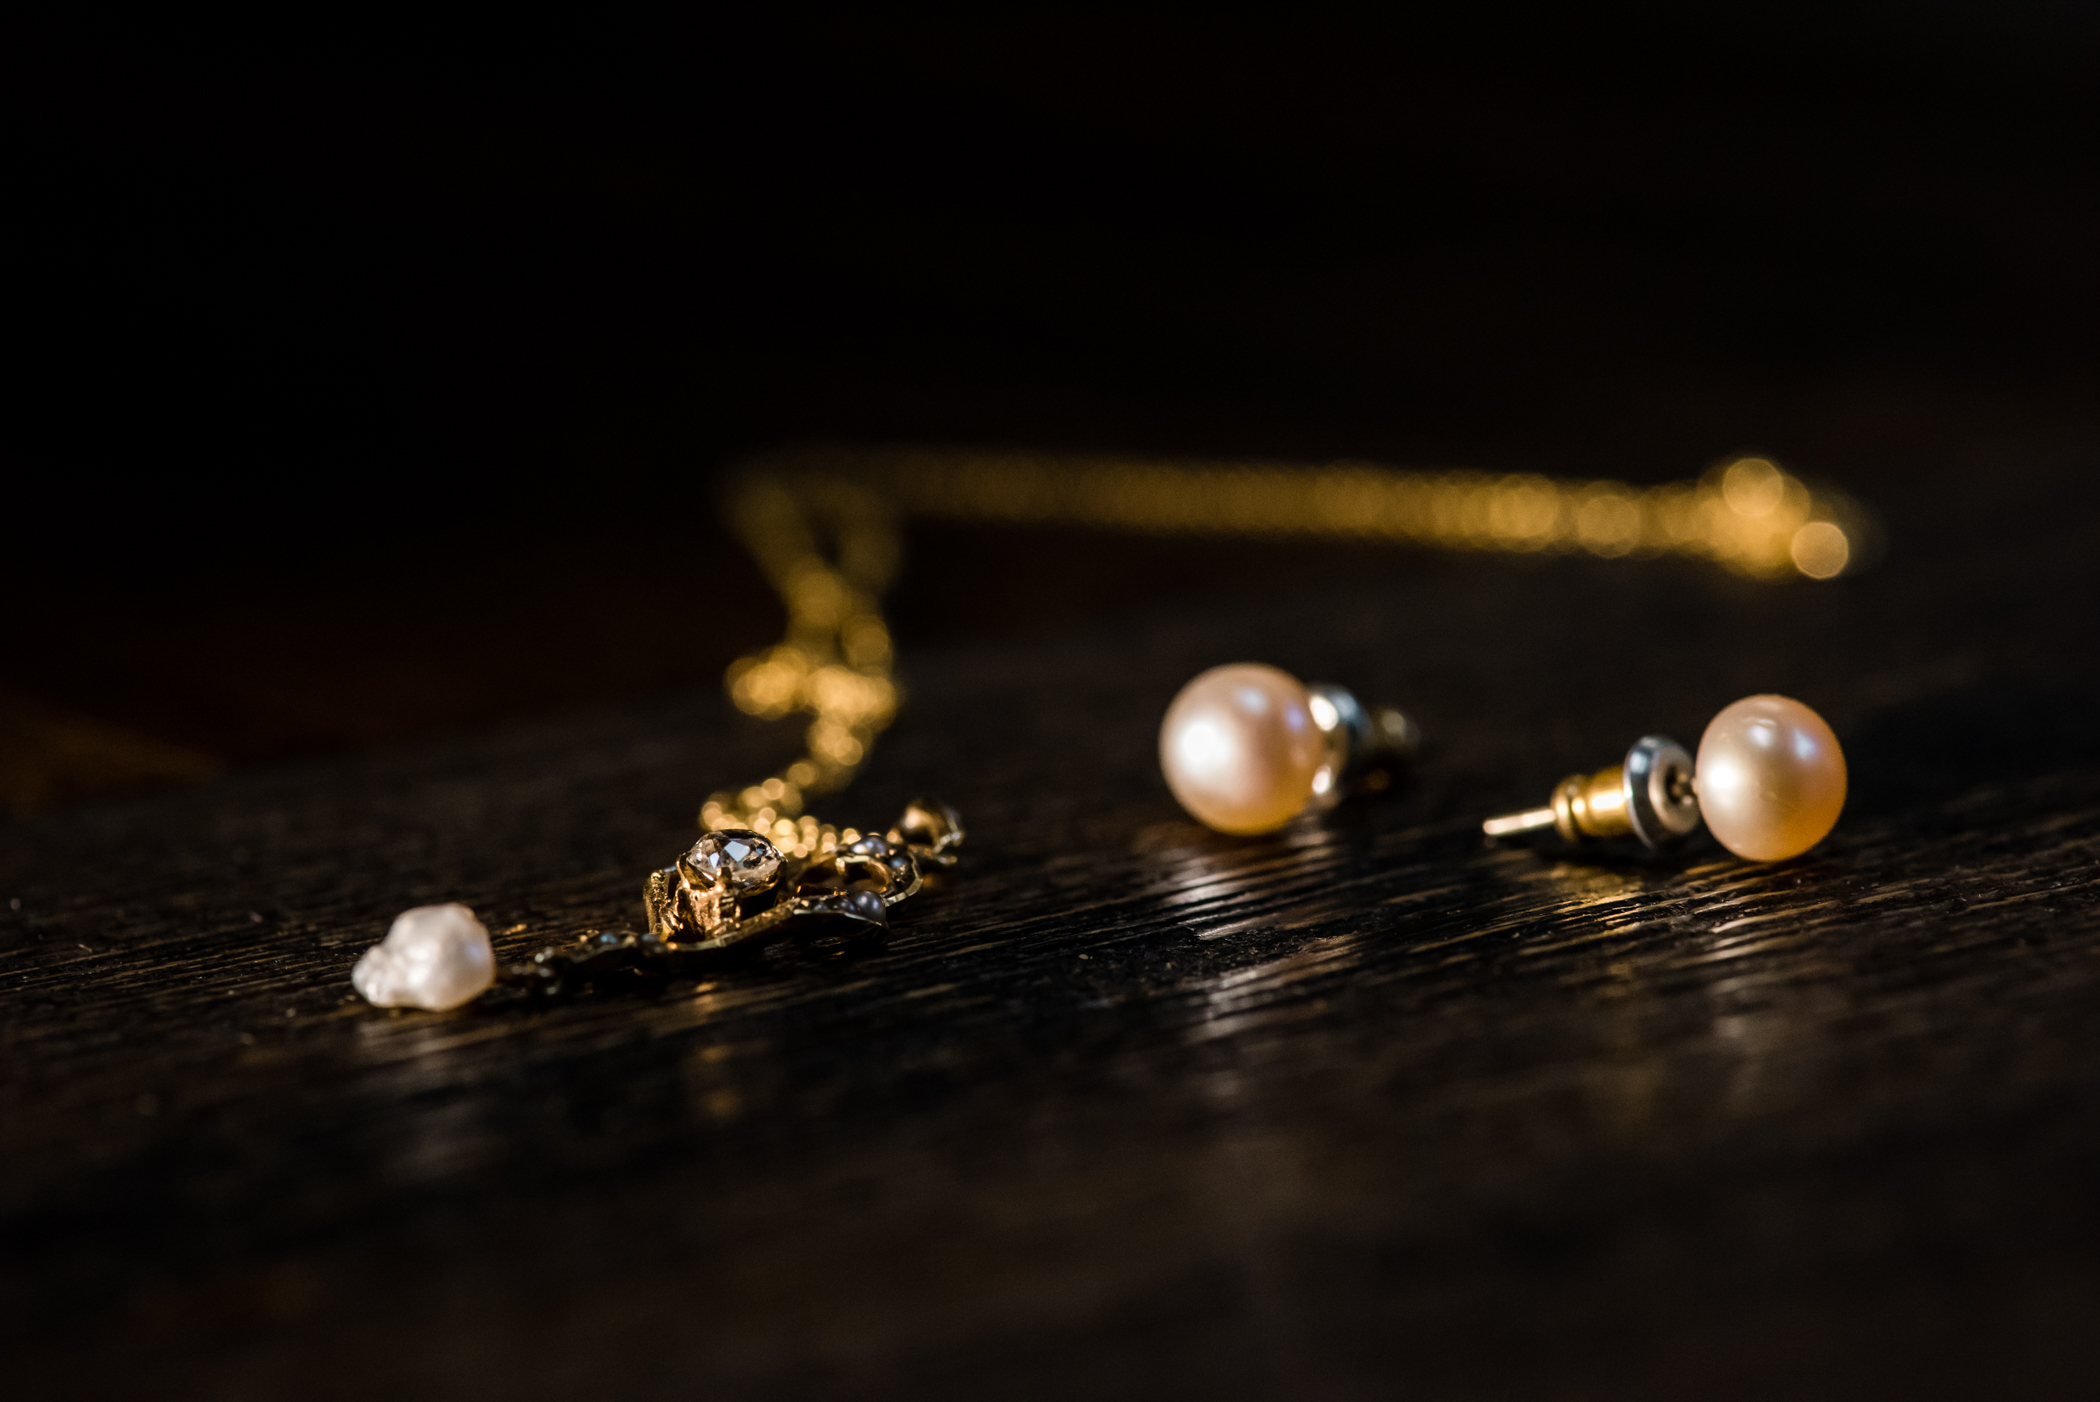 Stefy Hilmer Photography -earring detail photo.jpg